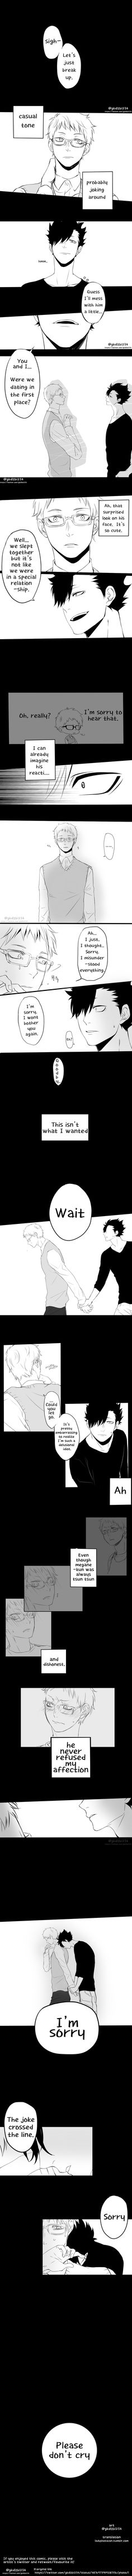 Break Up - KuroTsuki / Kuroo x Tsukishima - 全知全能, Artist: @gkdlzb1234 posted via twitter Translator:...